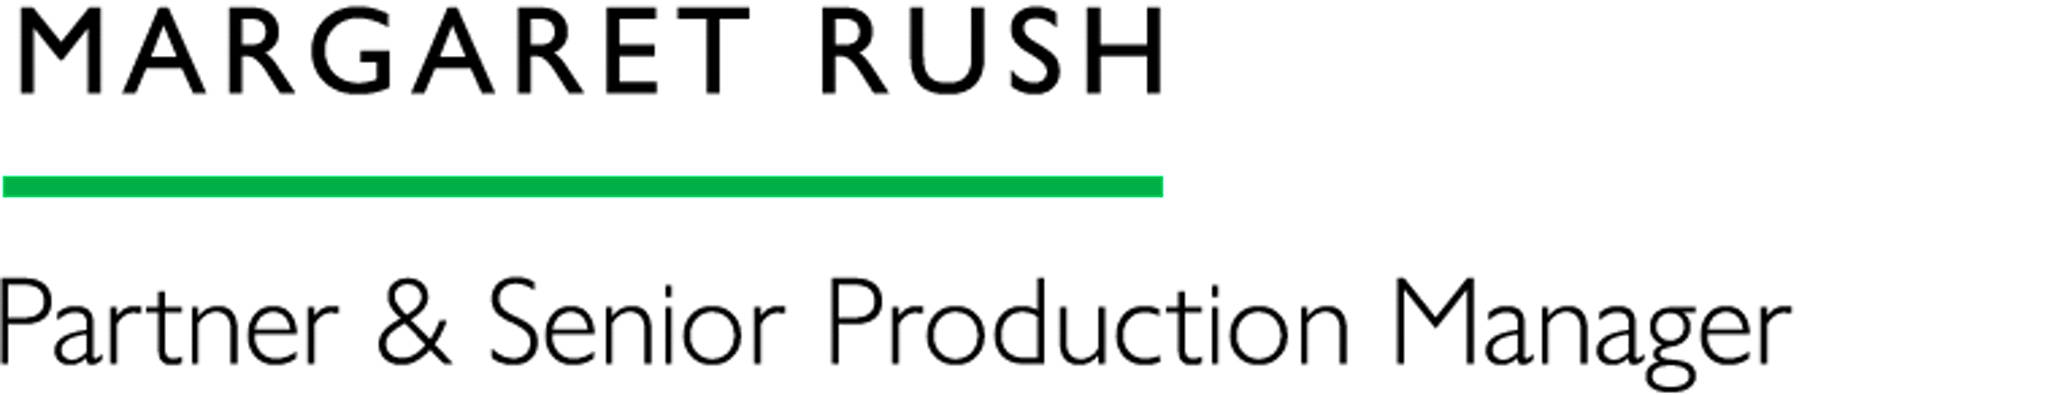 Margaret Rush - Partner & Senior Production Manager